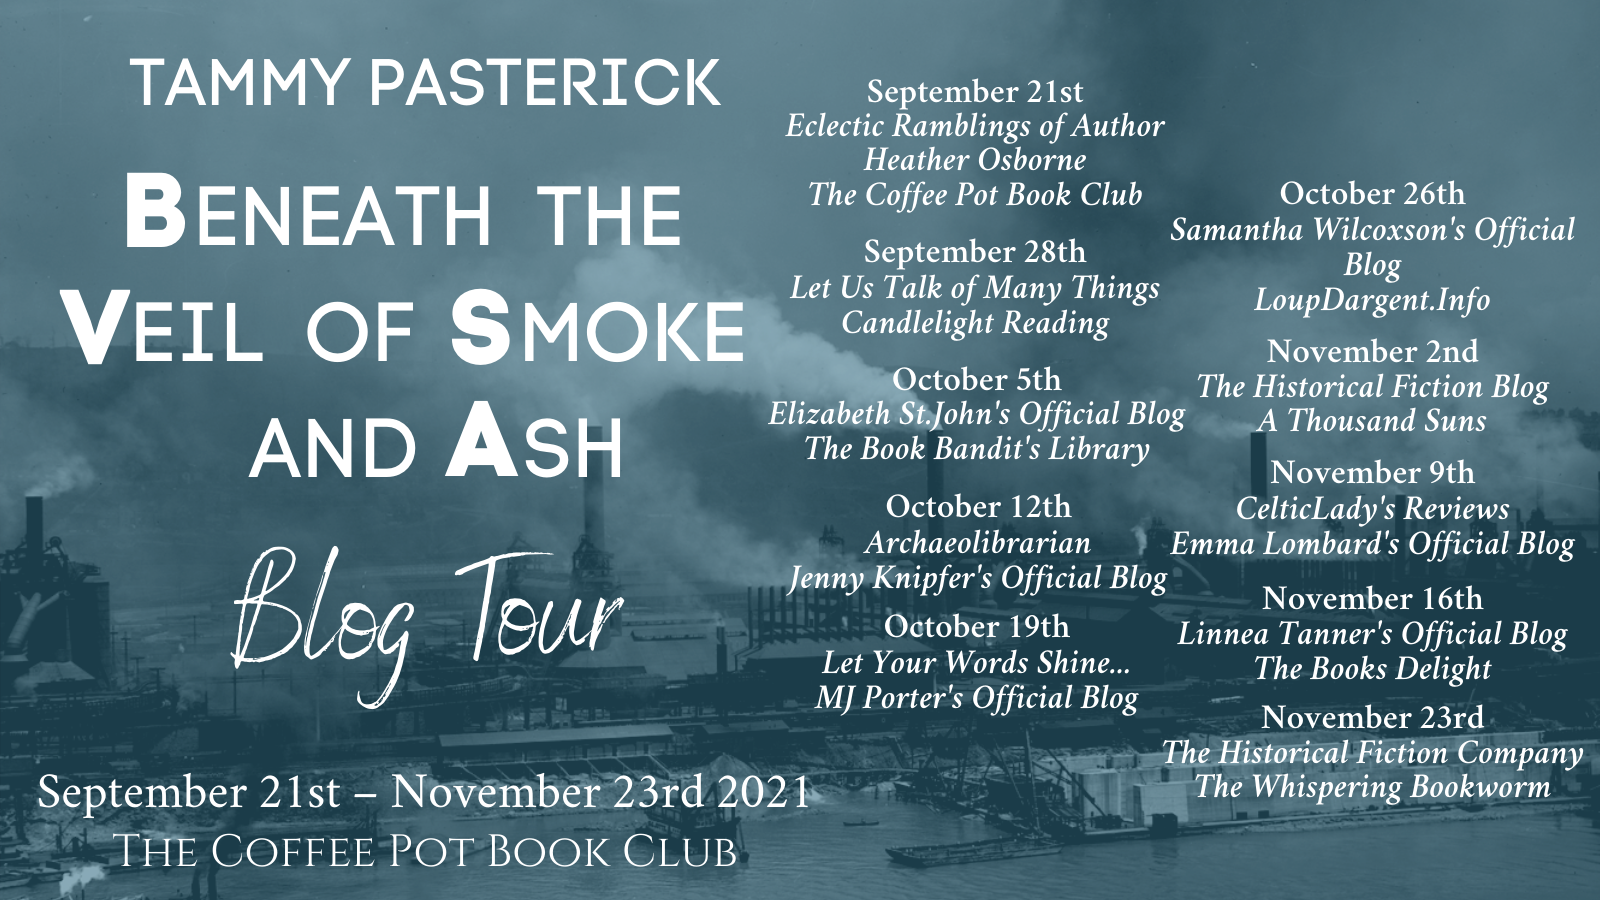 Beneath The Veil of Smoke and Ash Tour Schedule Banner